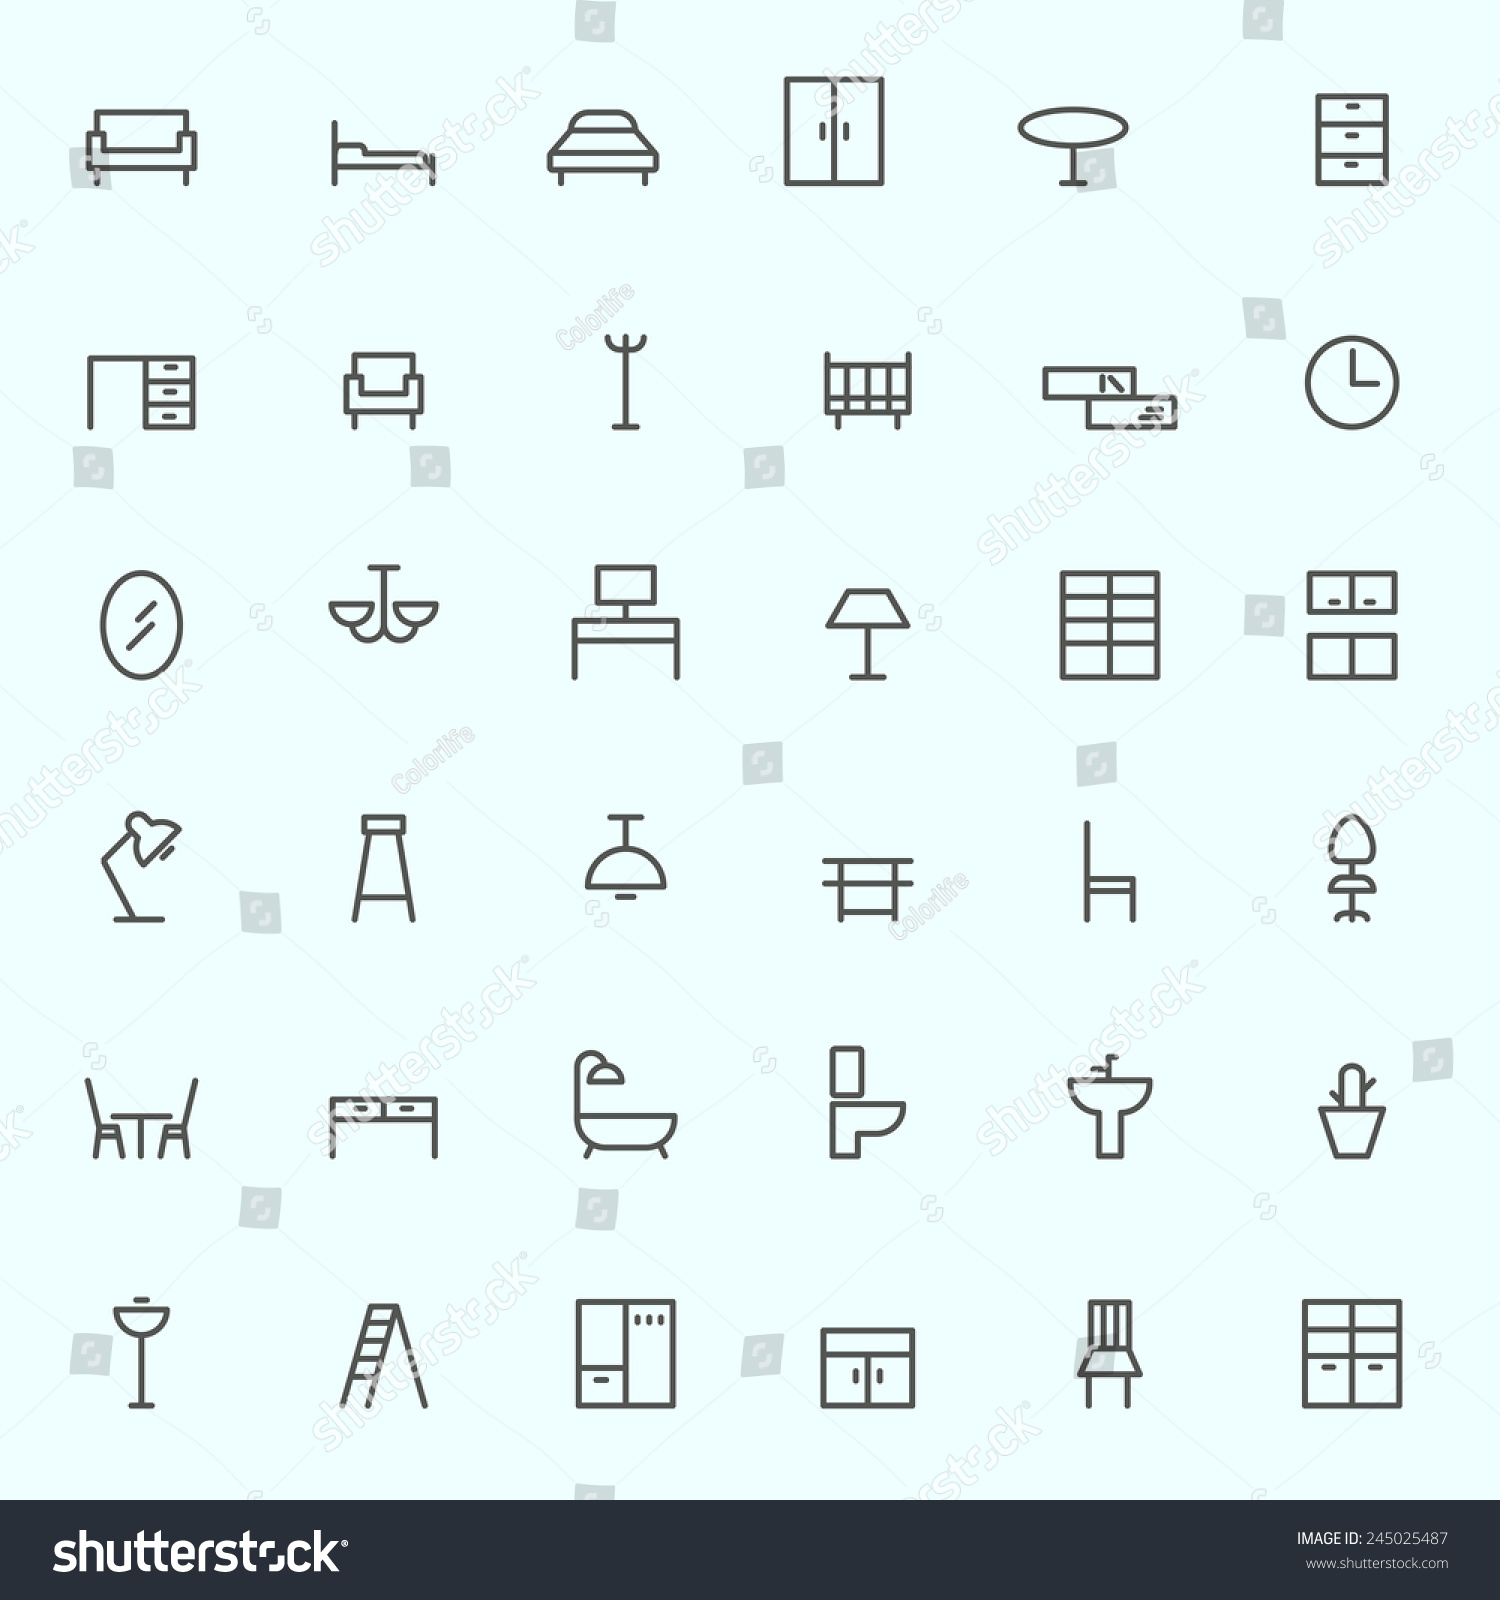 Furniture icons simple and thin line design